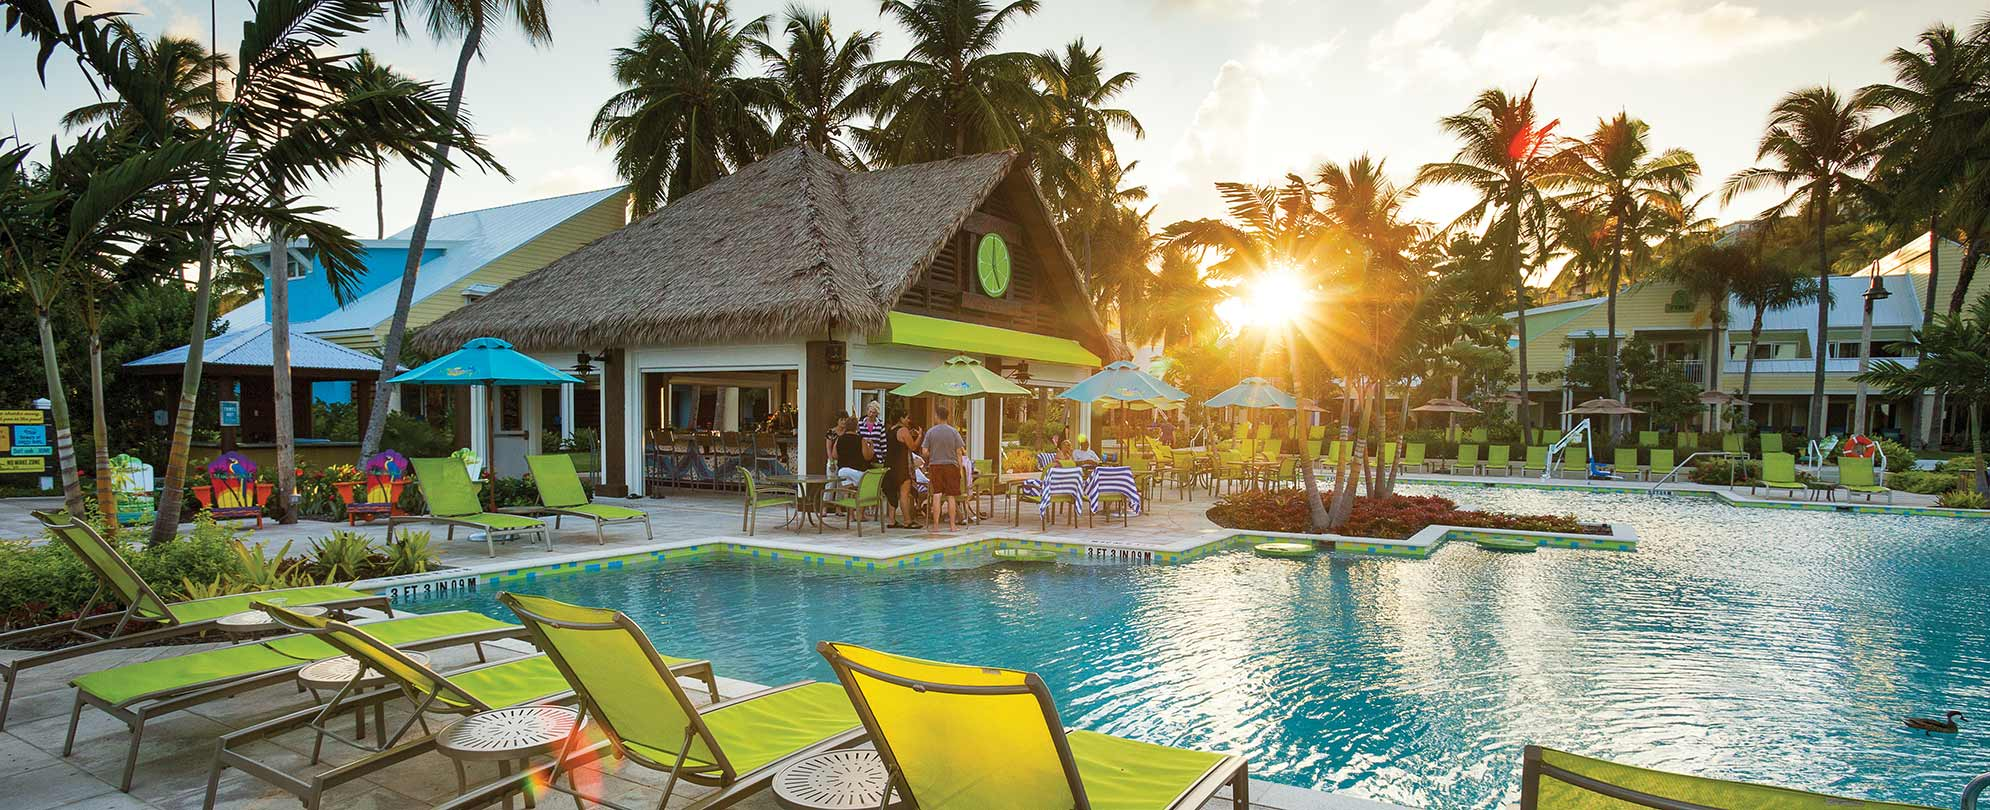 The sun sets on the pool, tiki bar, and bright green pool chairs at Margaritaville Vacation Club by Wyndham - St. Thomas.